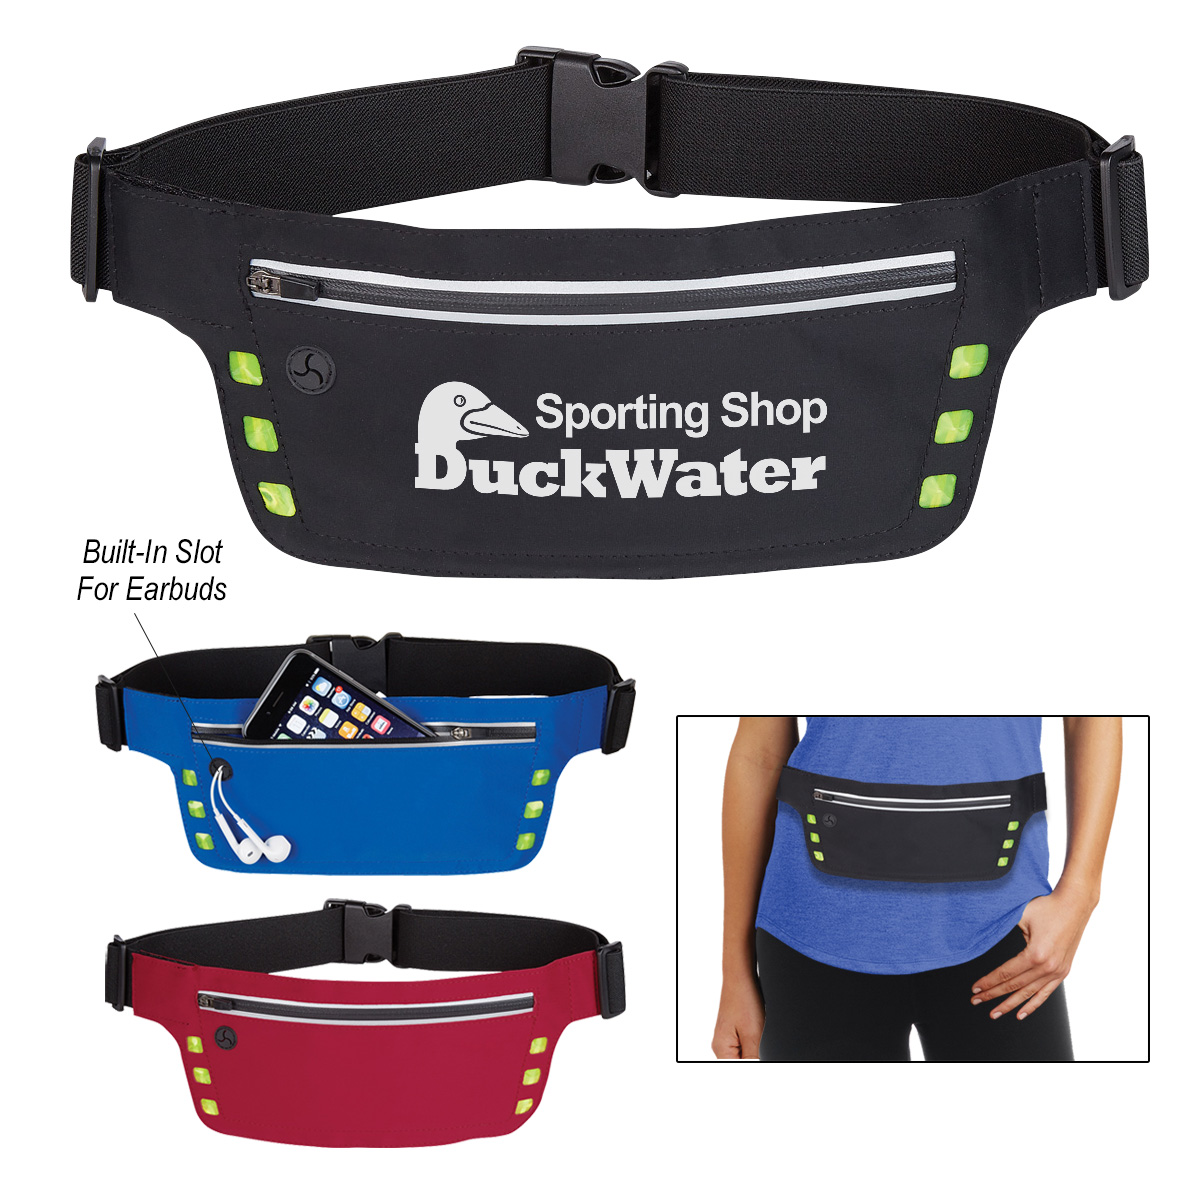 #CM 4206 Running Belt With Safety Strip And Lights